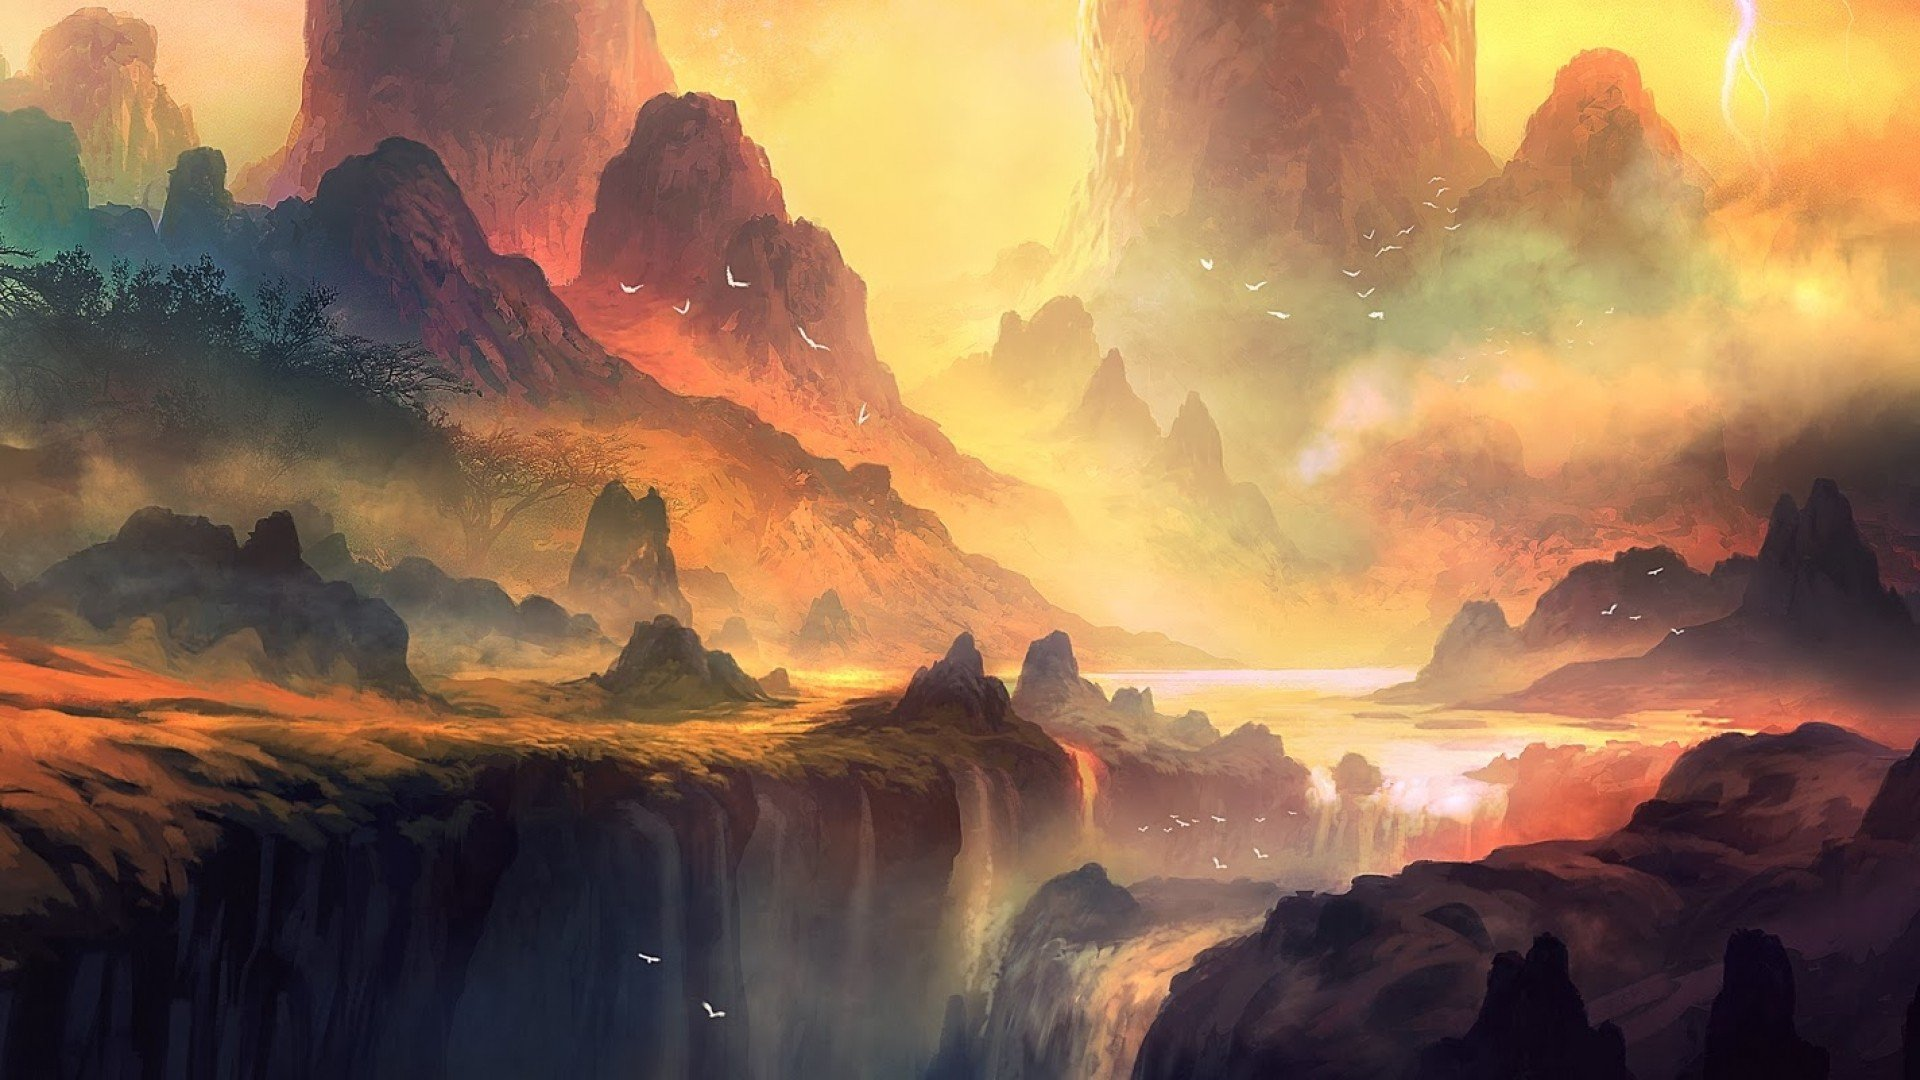 Mrsuicidesheep Wallpaper Fall Artwork Landscape Mountains Waterfall Sunlight Fantasy Art